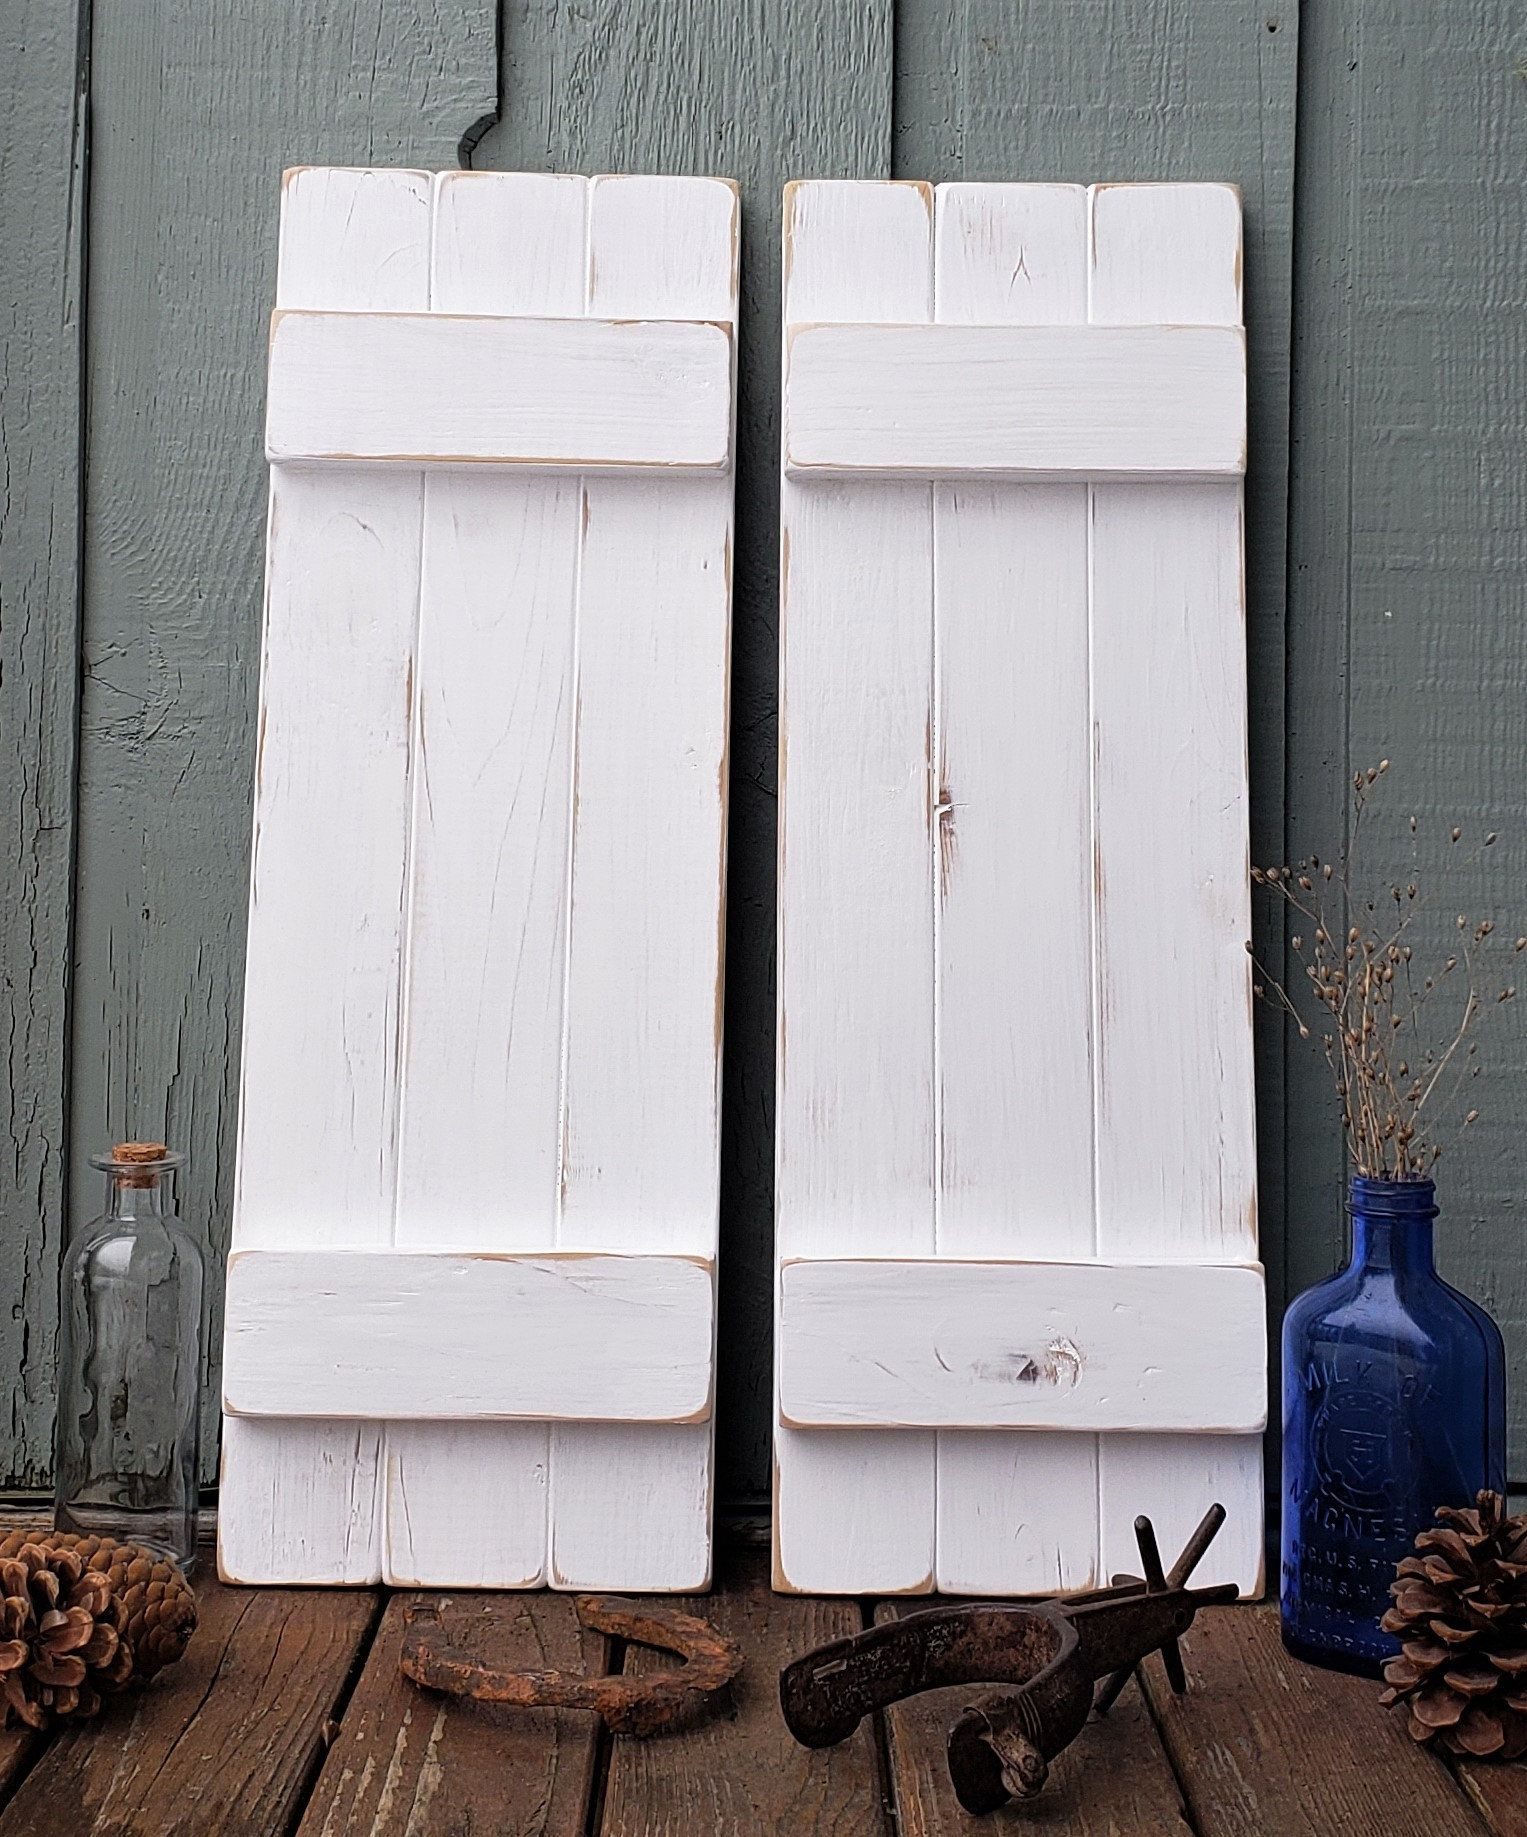 Distressed White Painted Wood Shutters Rustic Wood Shutters